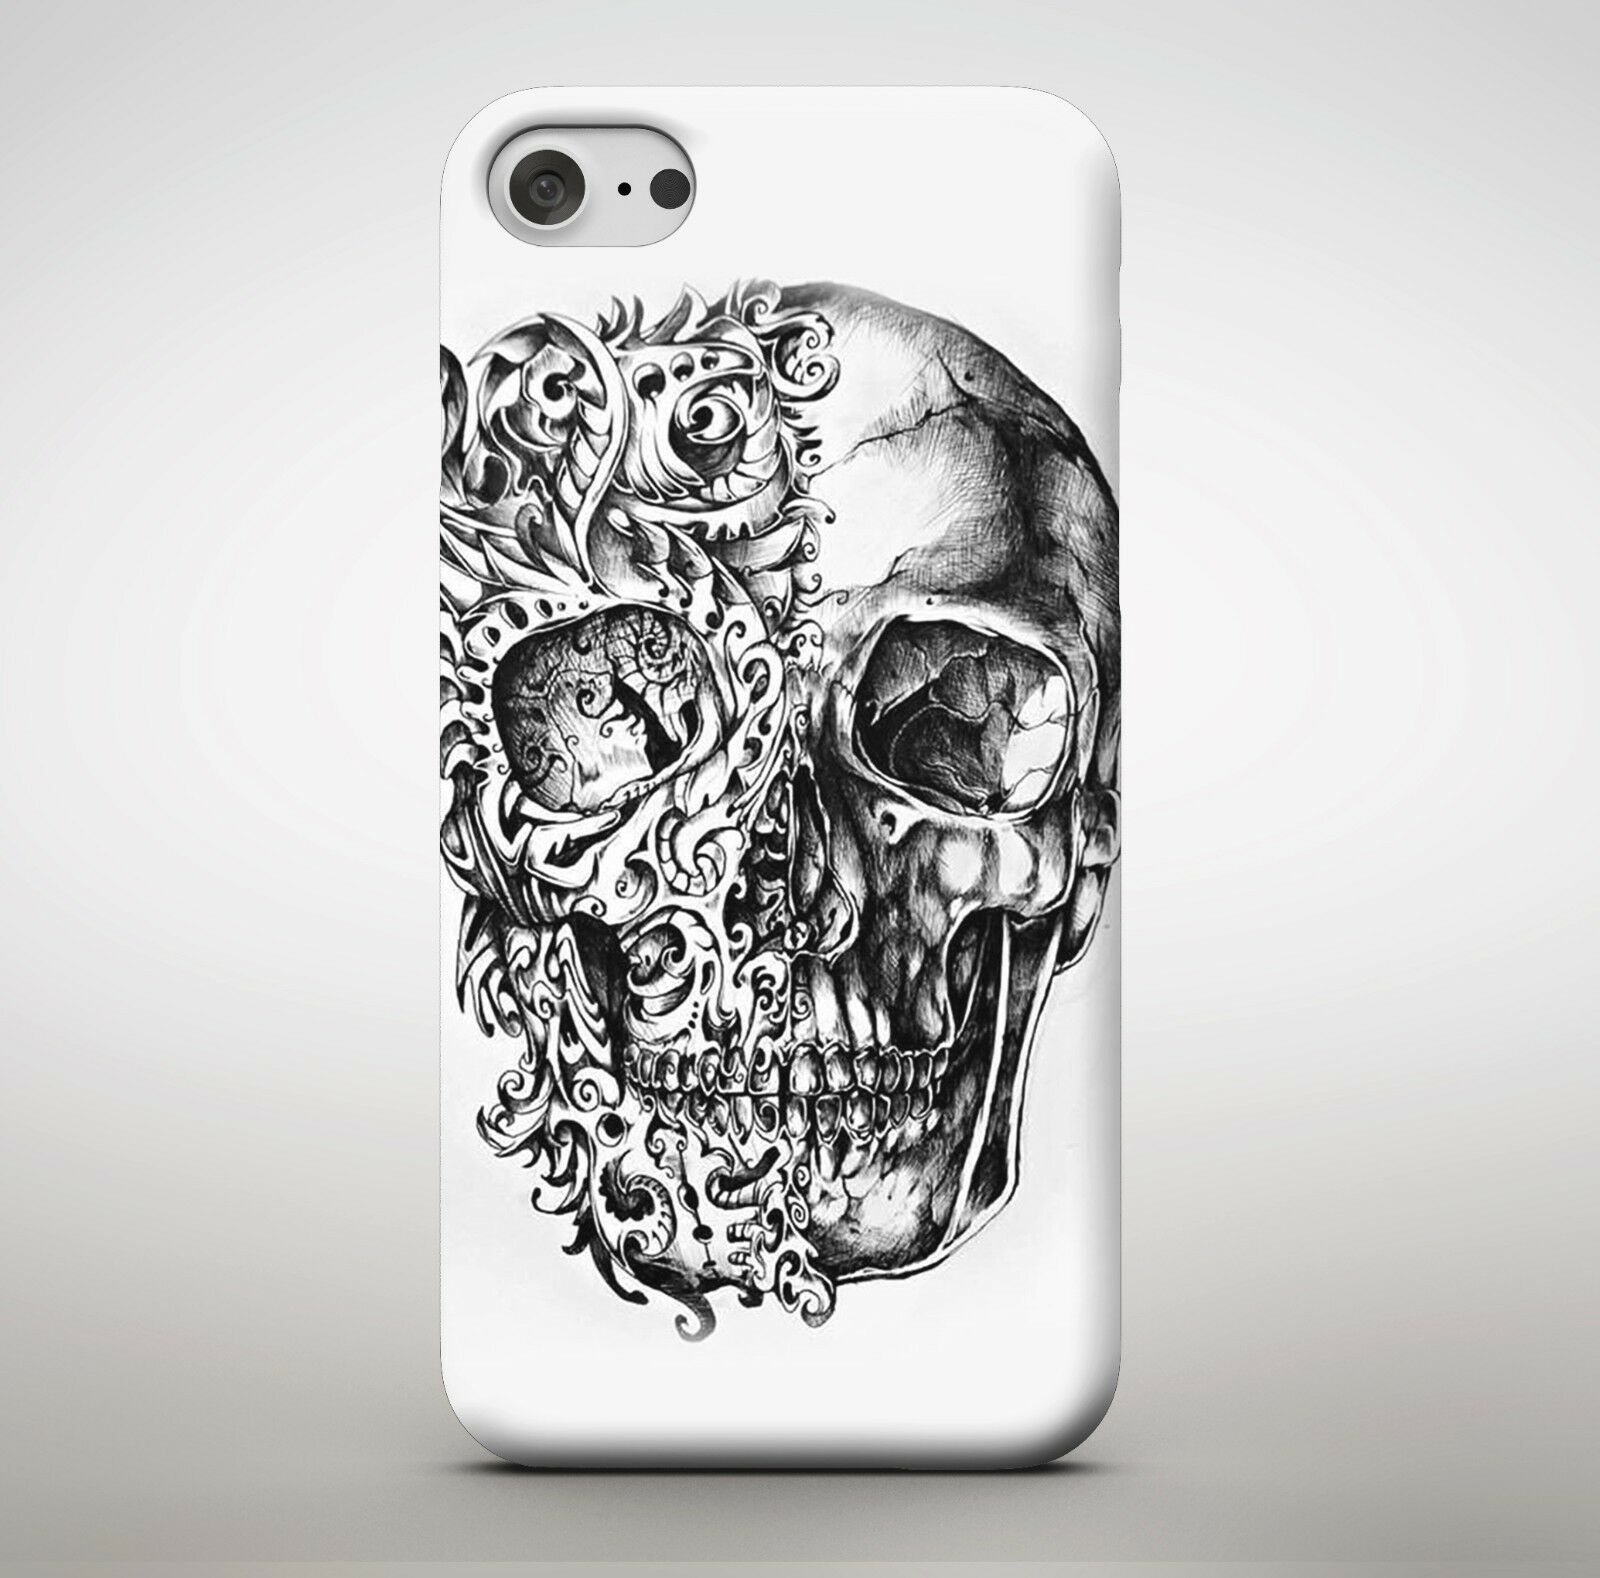 Details about awesome candy skull tattoo art fire ghost rider drawing pencil phone case cover